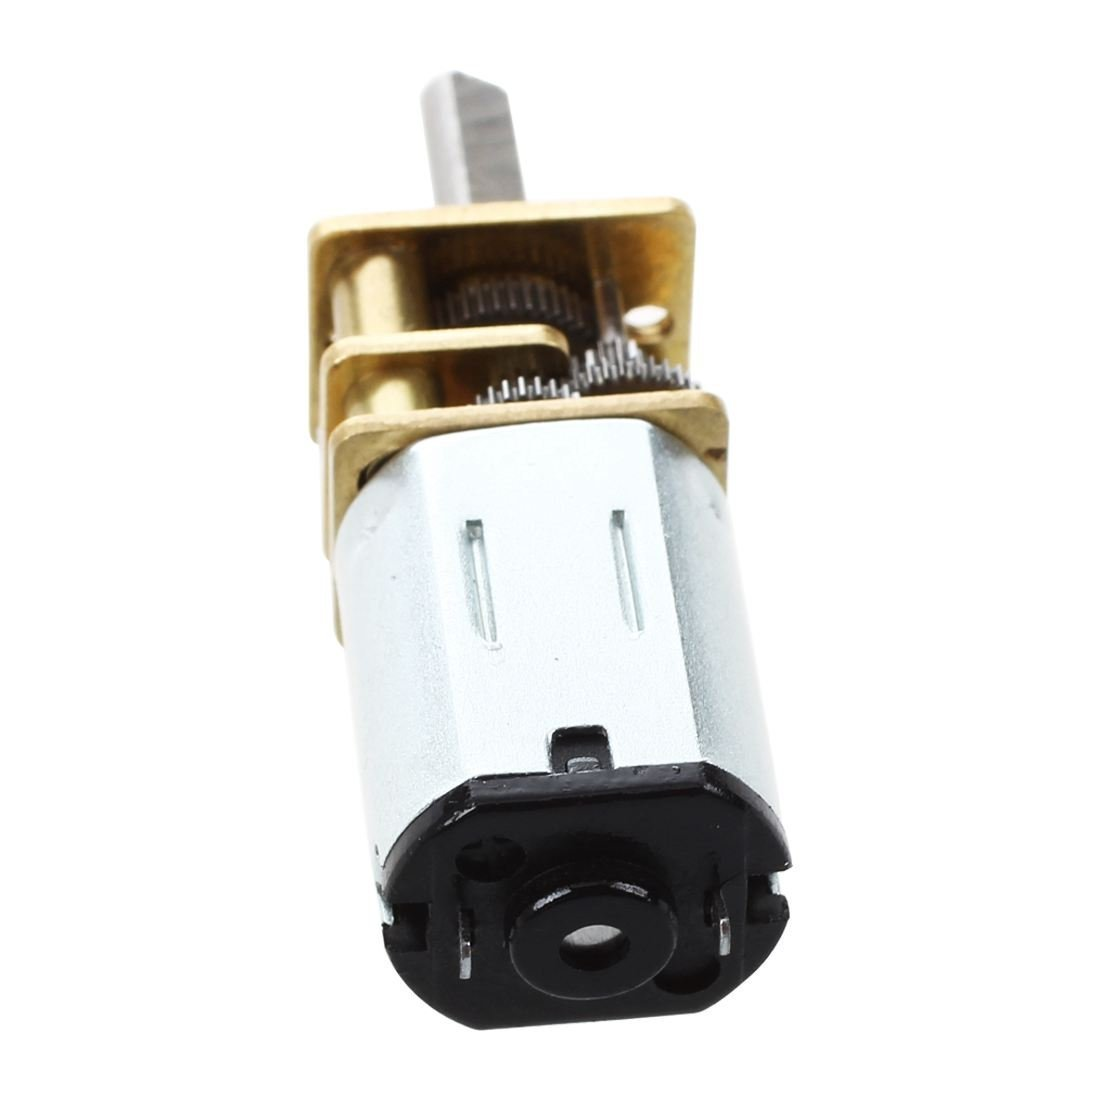 60 RPM DC 6V 0.3A High Torque Mini Electric DC Geared Motor For Robot Tool Kit